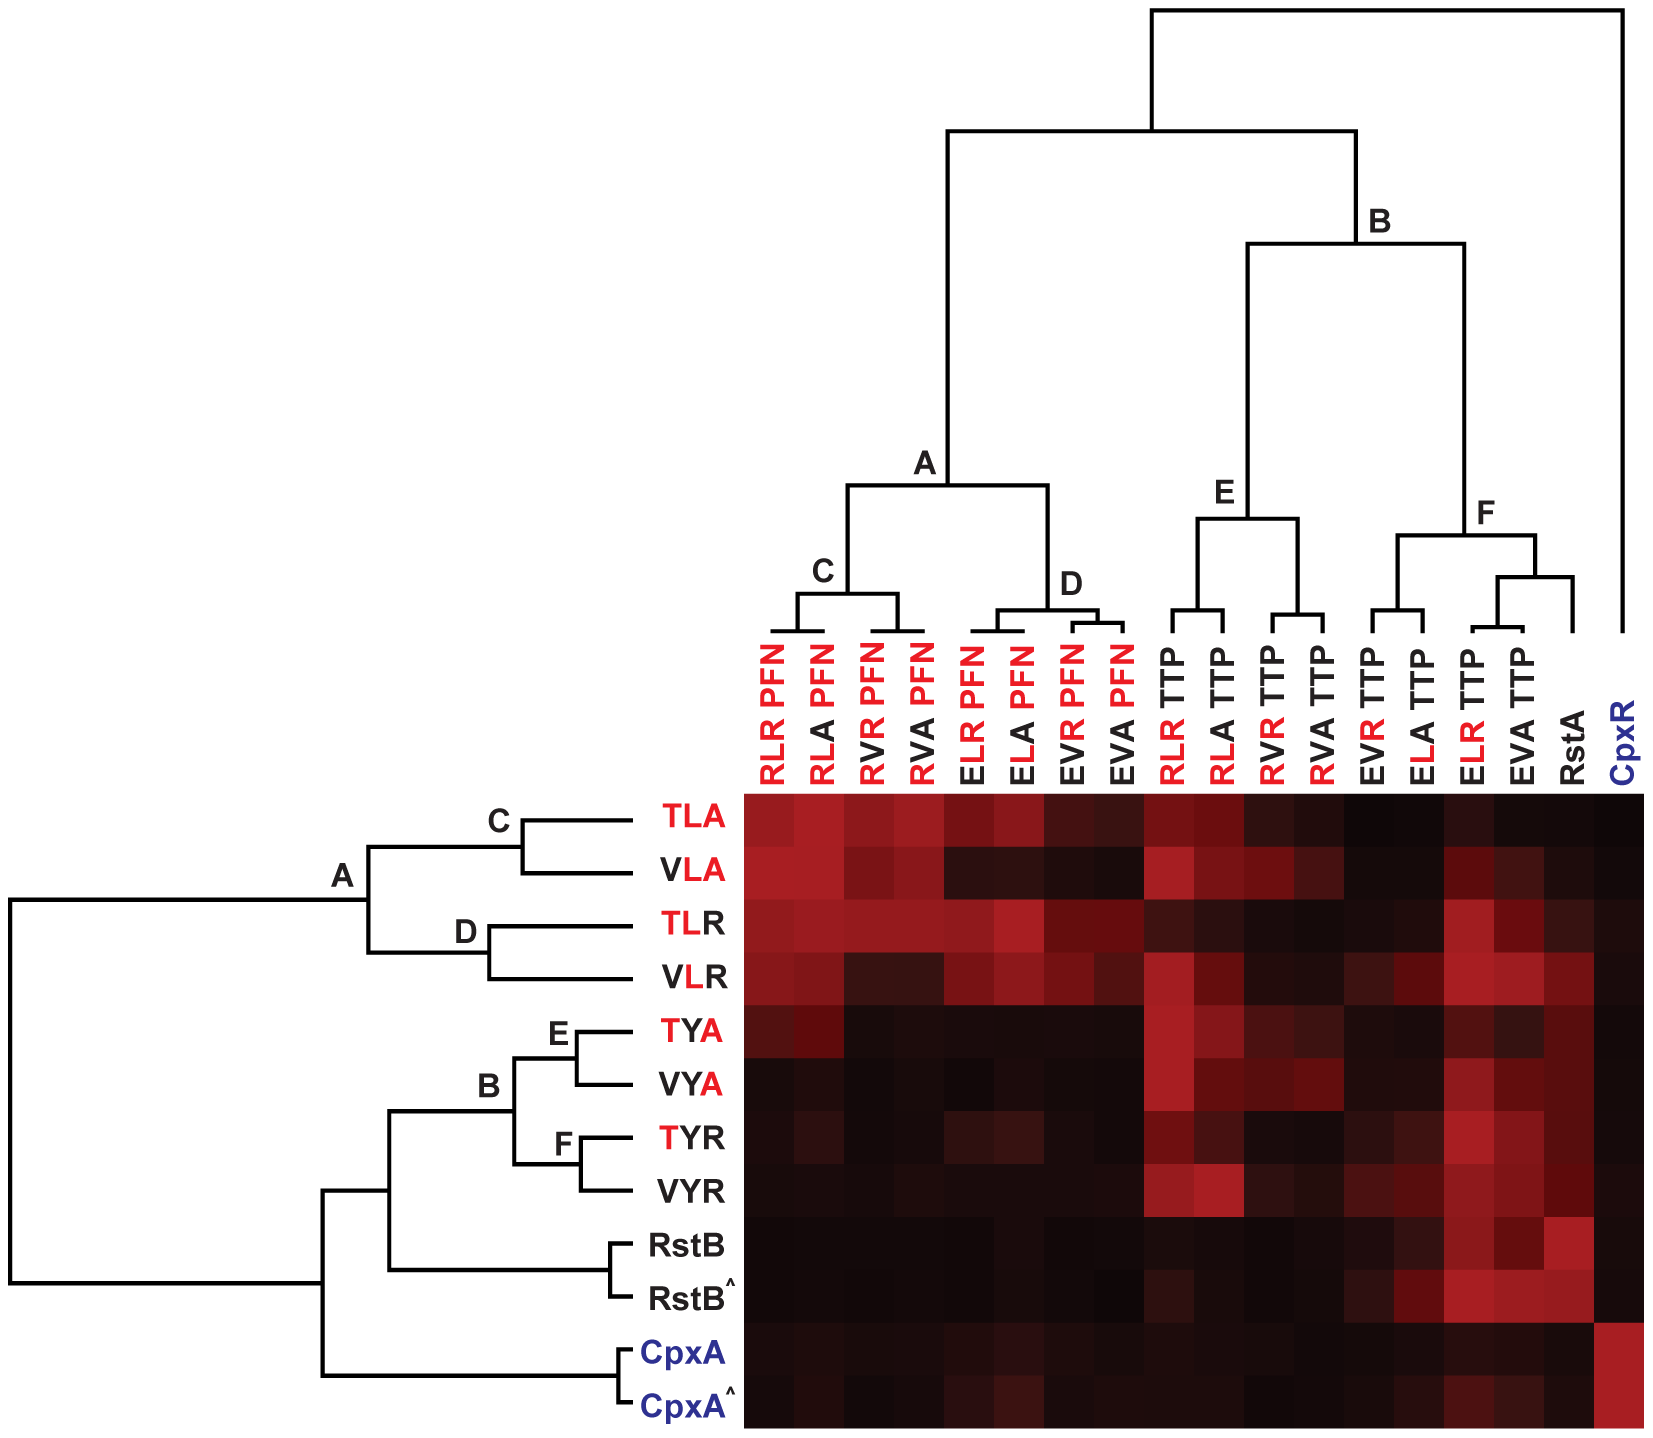 Hierarchical clustering of trajectory-scanning mutagenesis of EnvZ and OmpR.